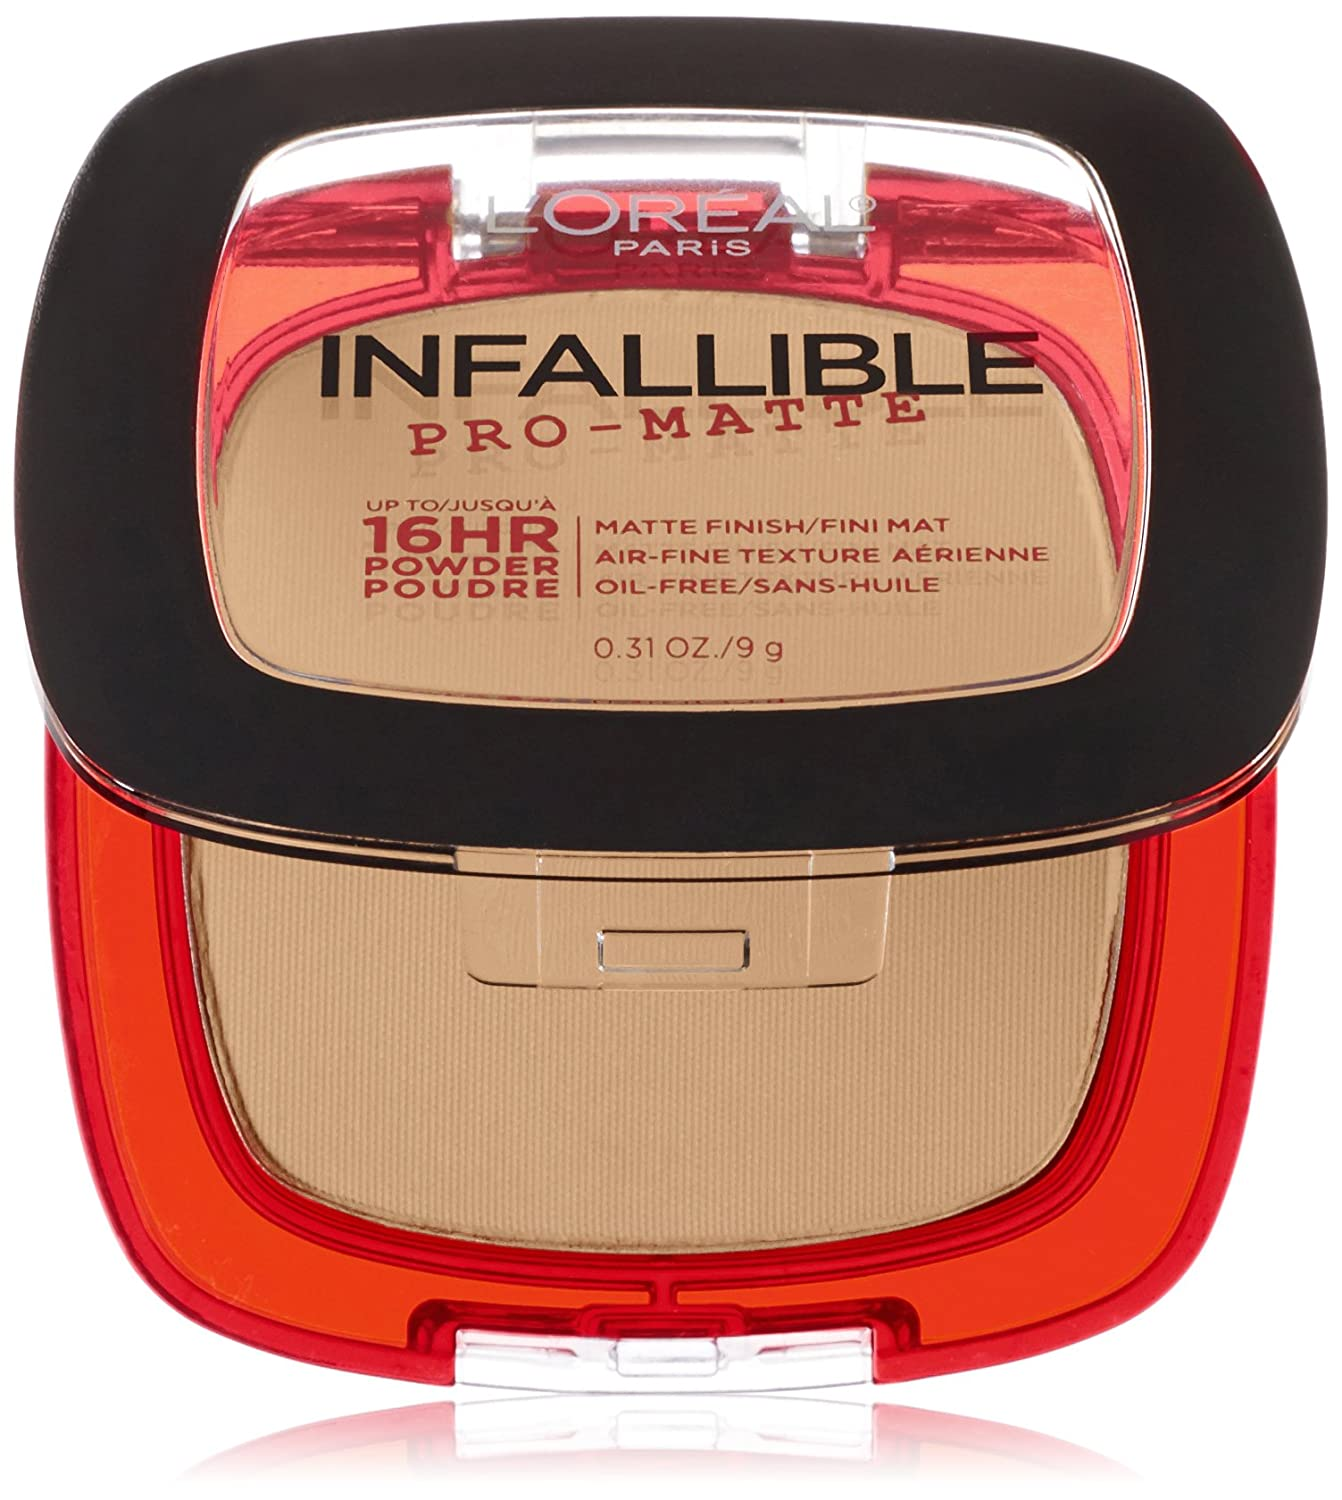 L'Oreal Paris Infallible pro-matte powder foundation, natural beige, 9g, Brown L'Oreal Paris Cosmetics K1831200